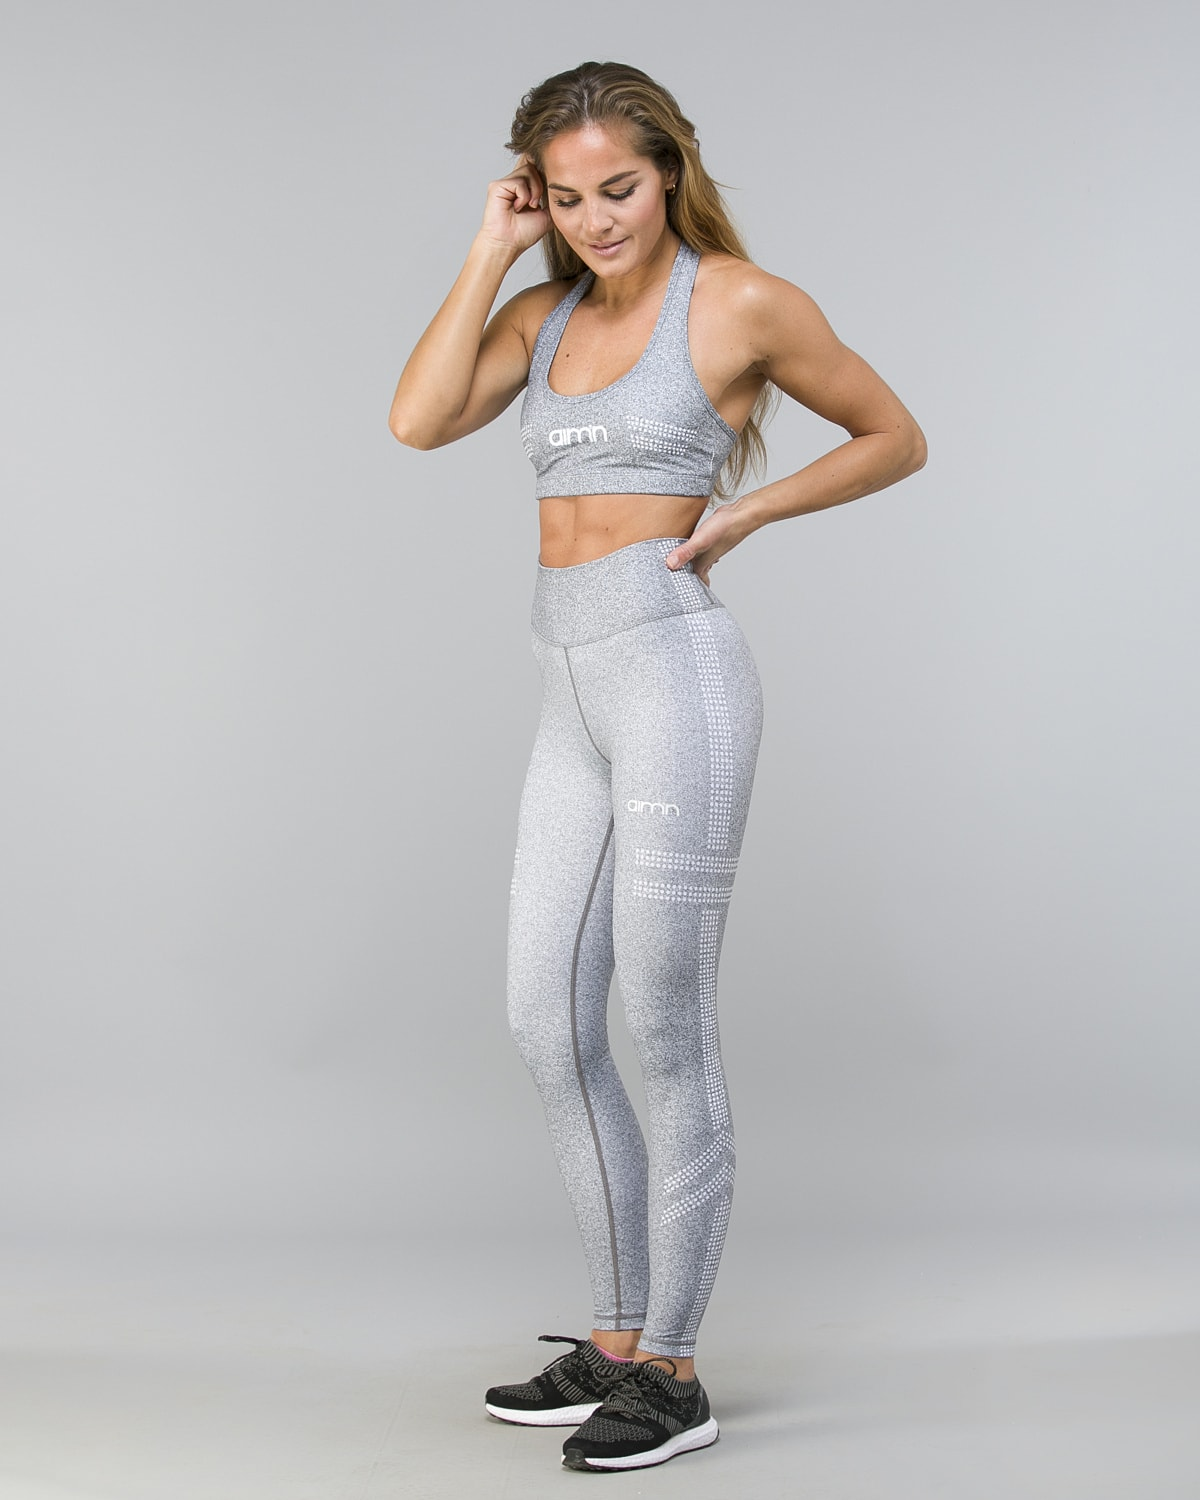 Aim'n Grey Tribe 2.0 Tights 18020017 and Bra 18030014